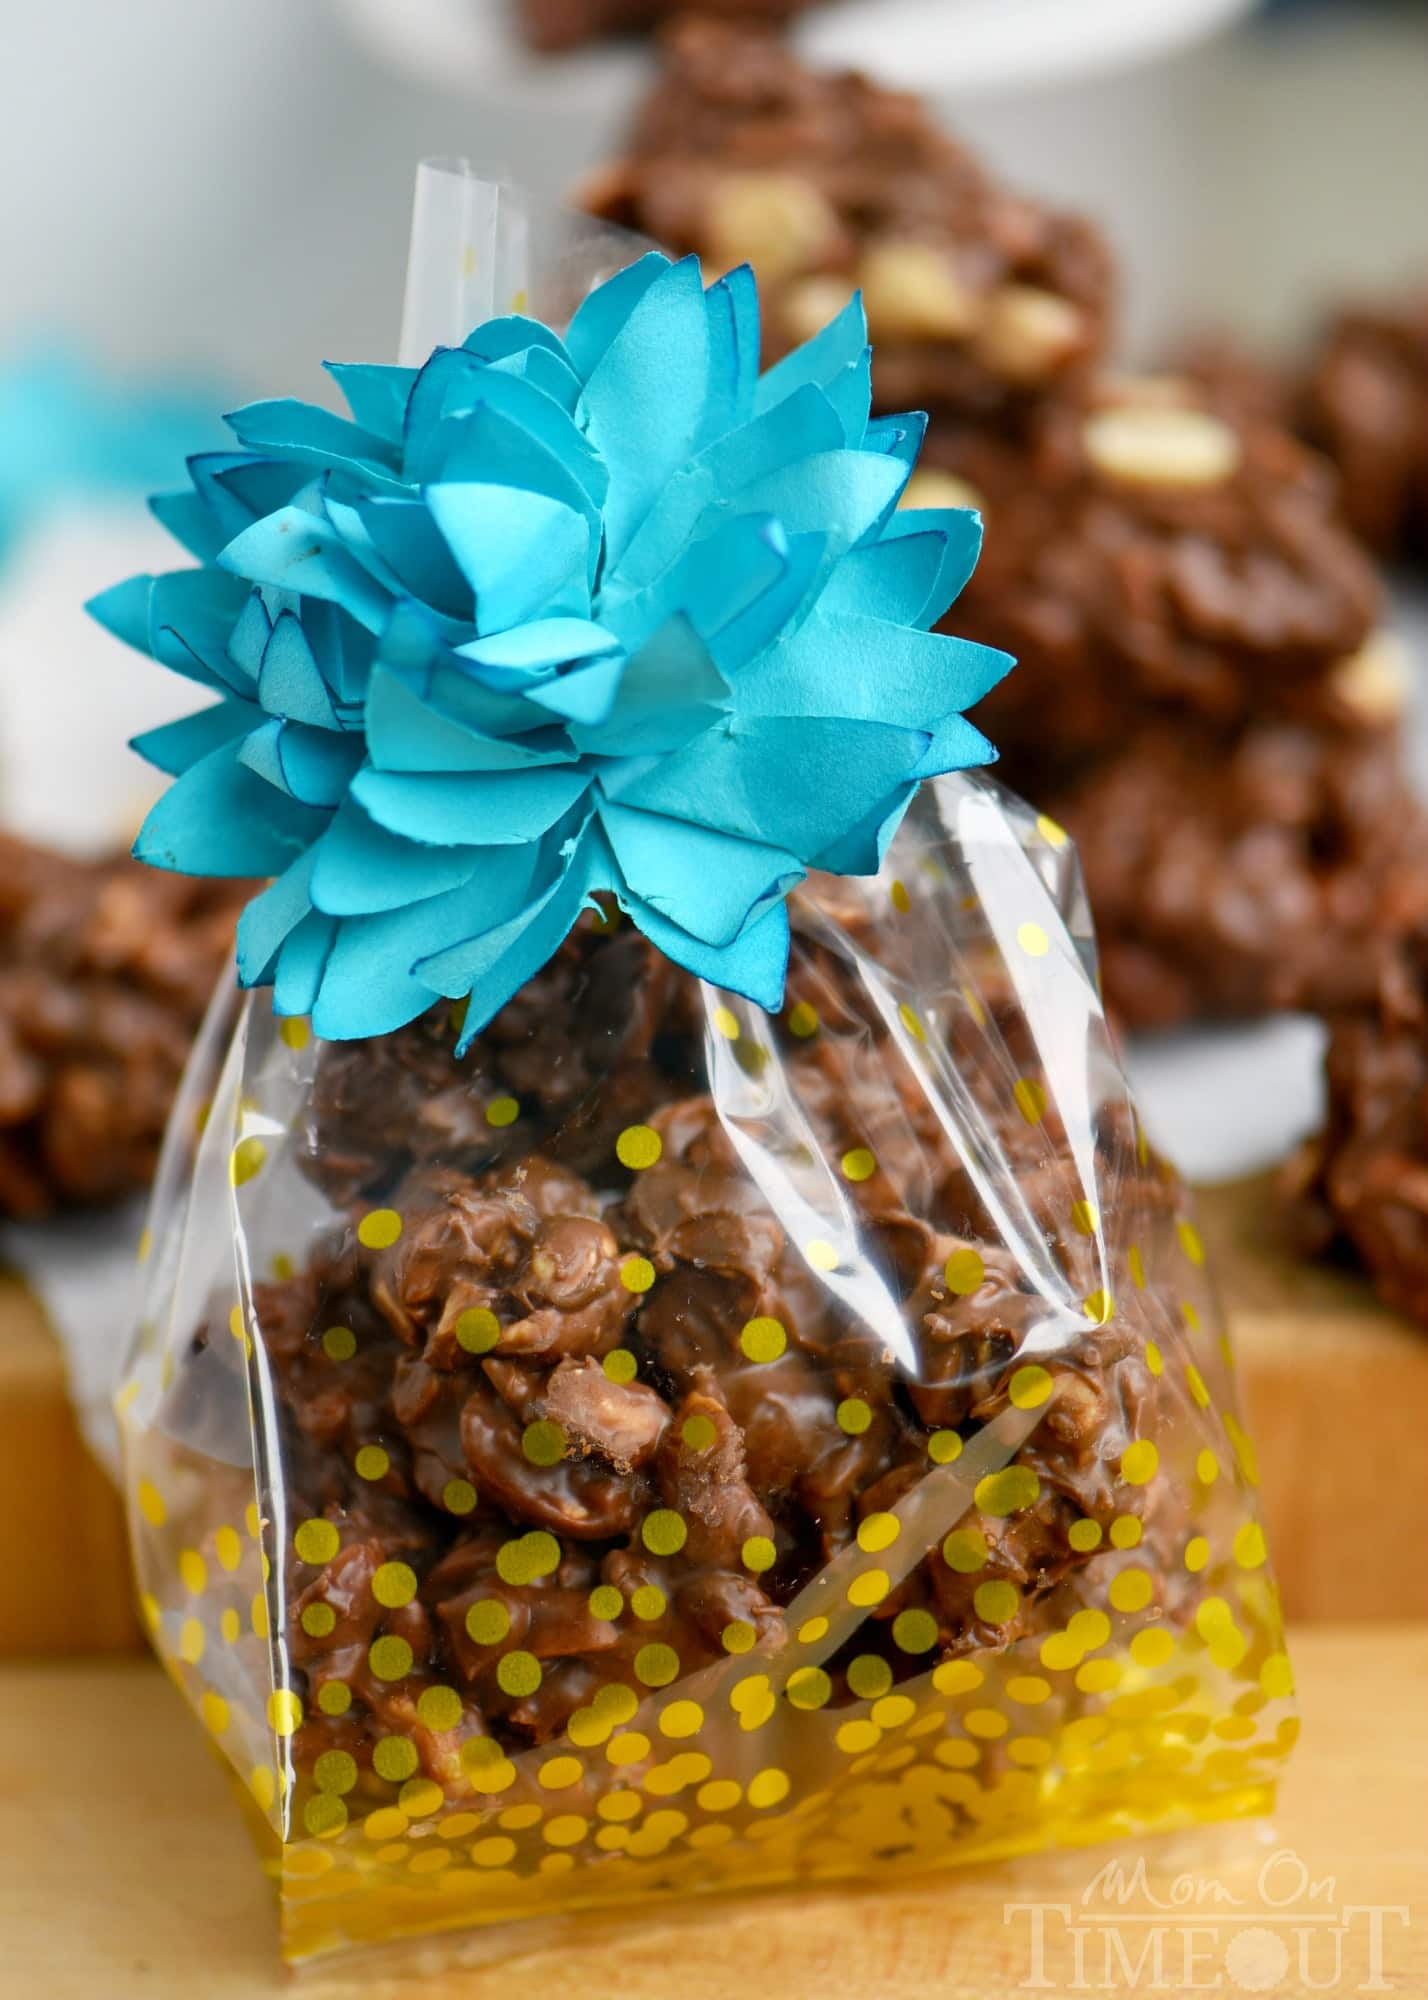 These Toffee Peanut Clusters are made in the microwave and use only FIVE ingredients! A simple, delicious, easy candy recipe that everyone will enjoy! Great for gifts! // Mom On Timeout